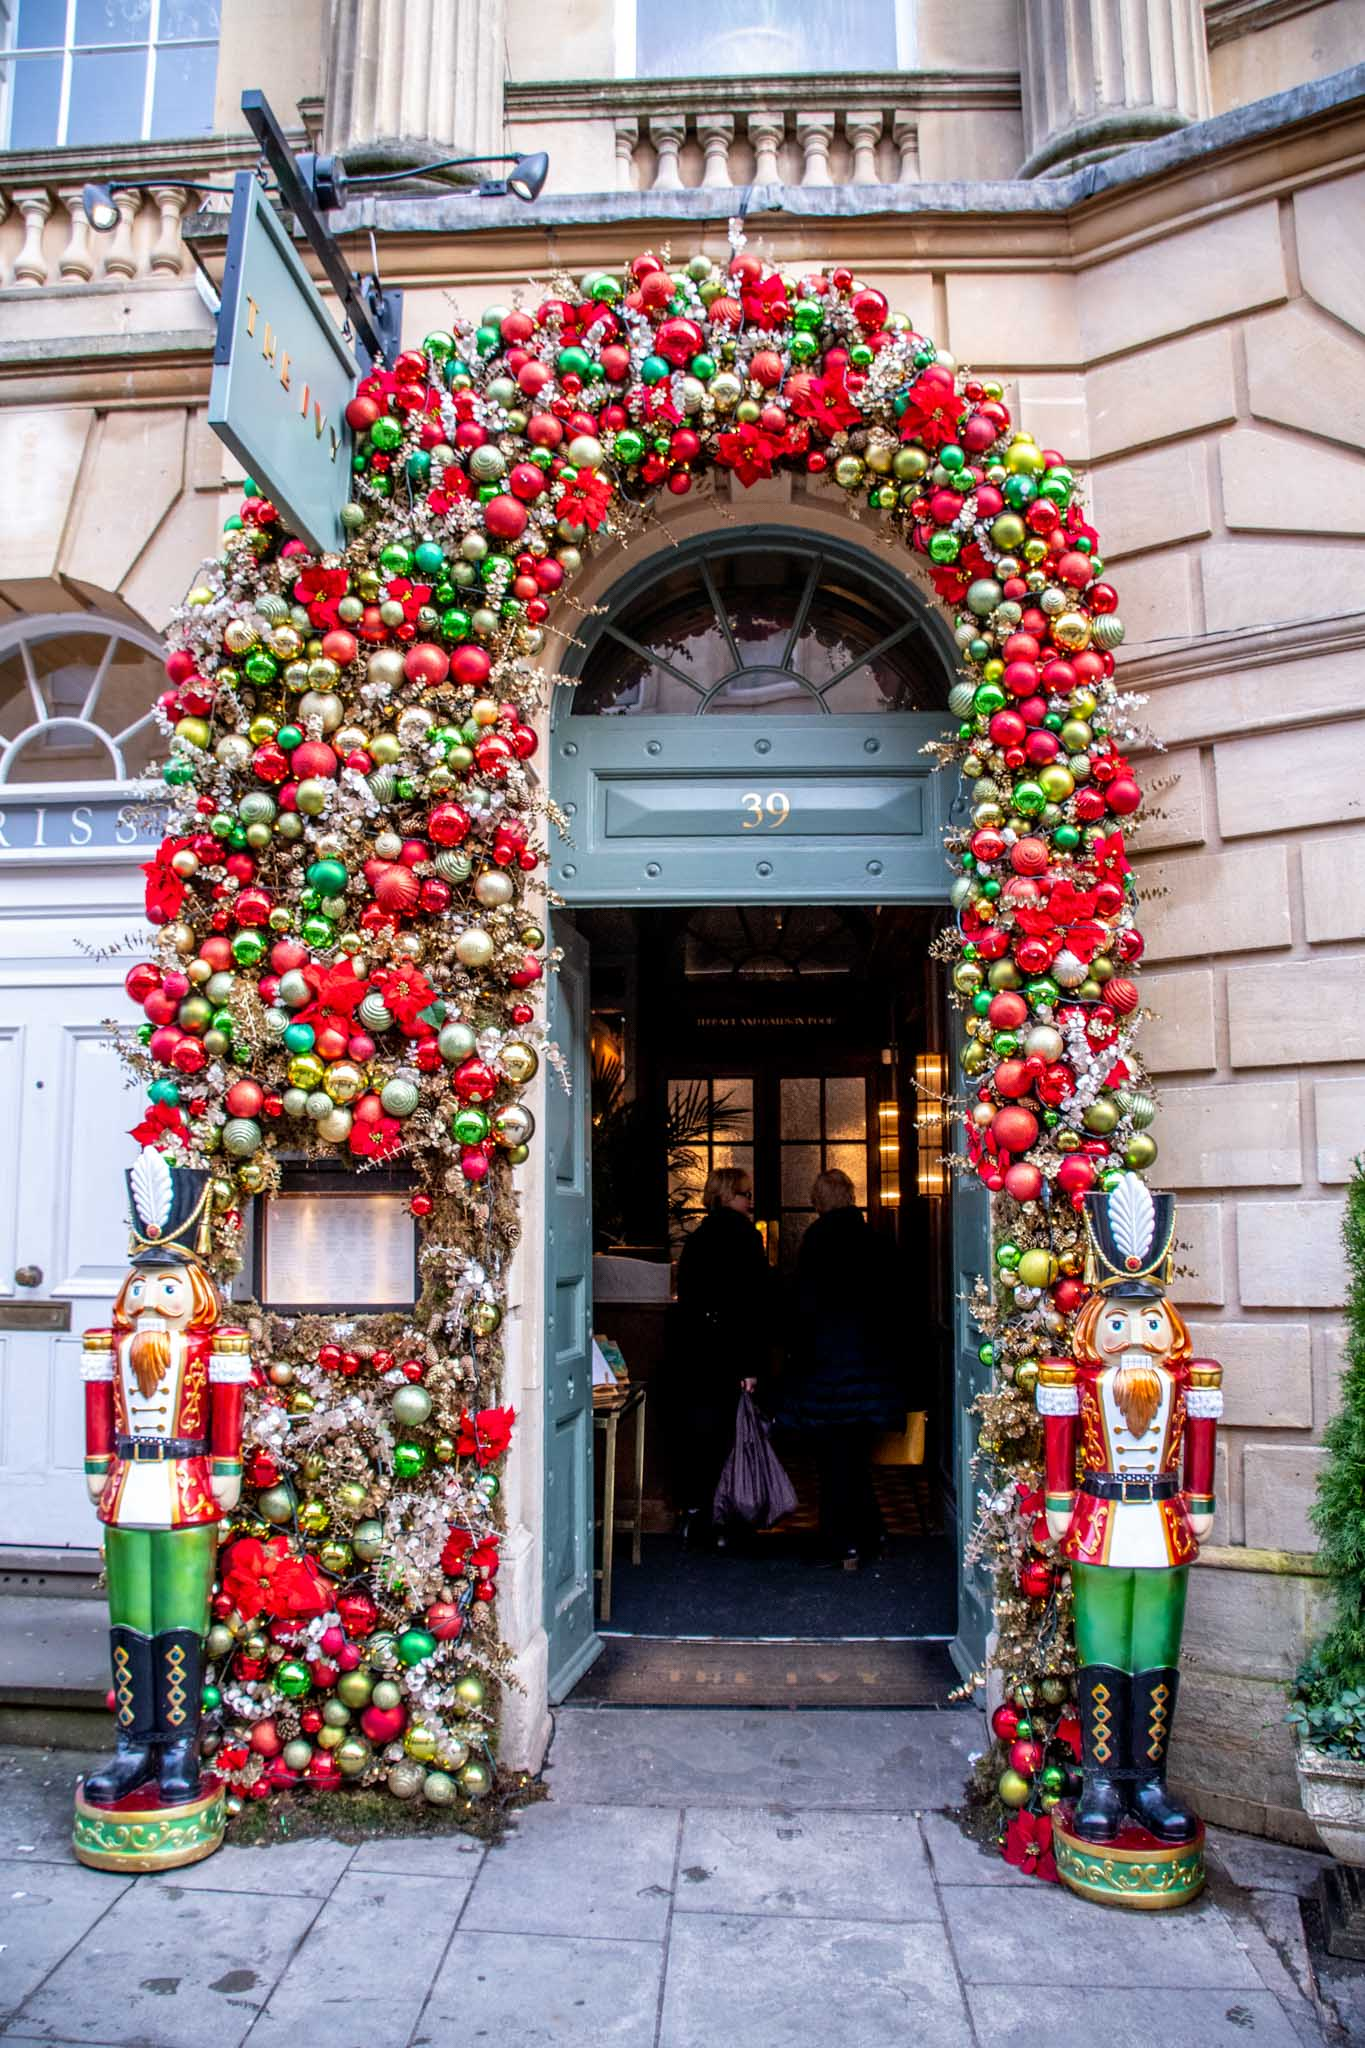 Doorway covered in ornaments and flanked by two nutcrackers